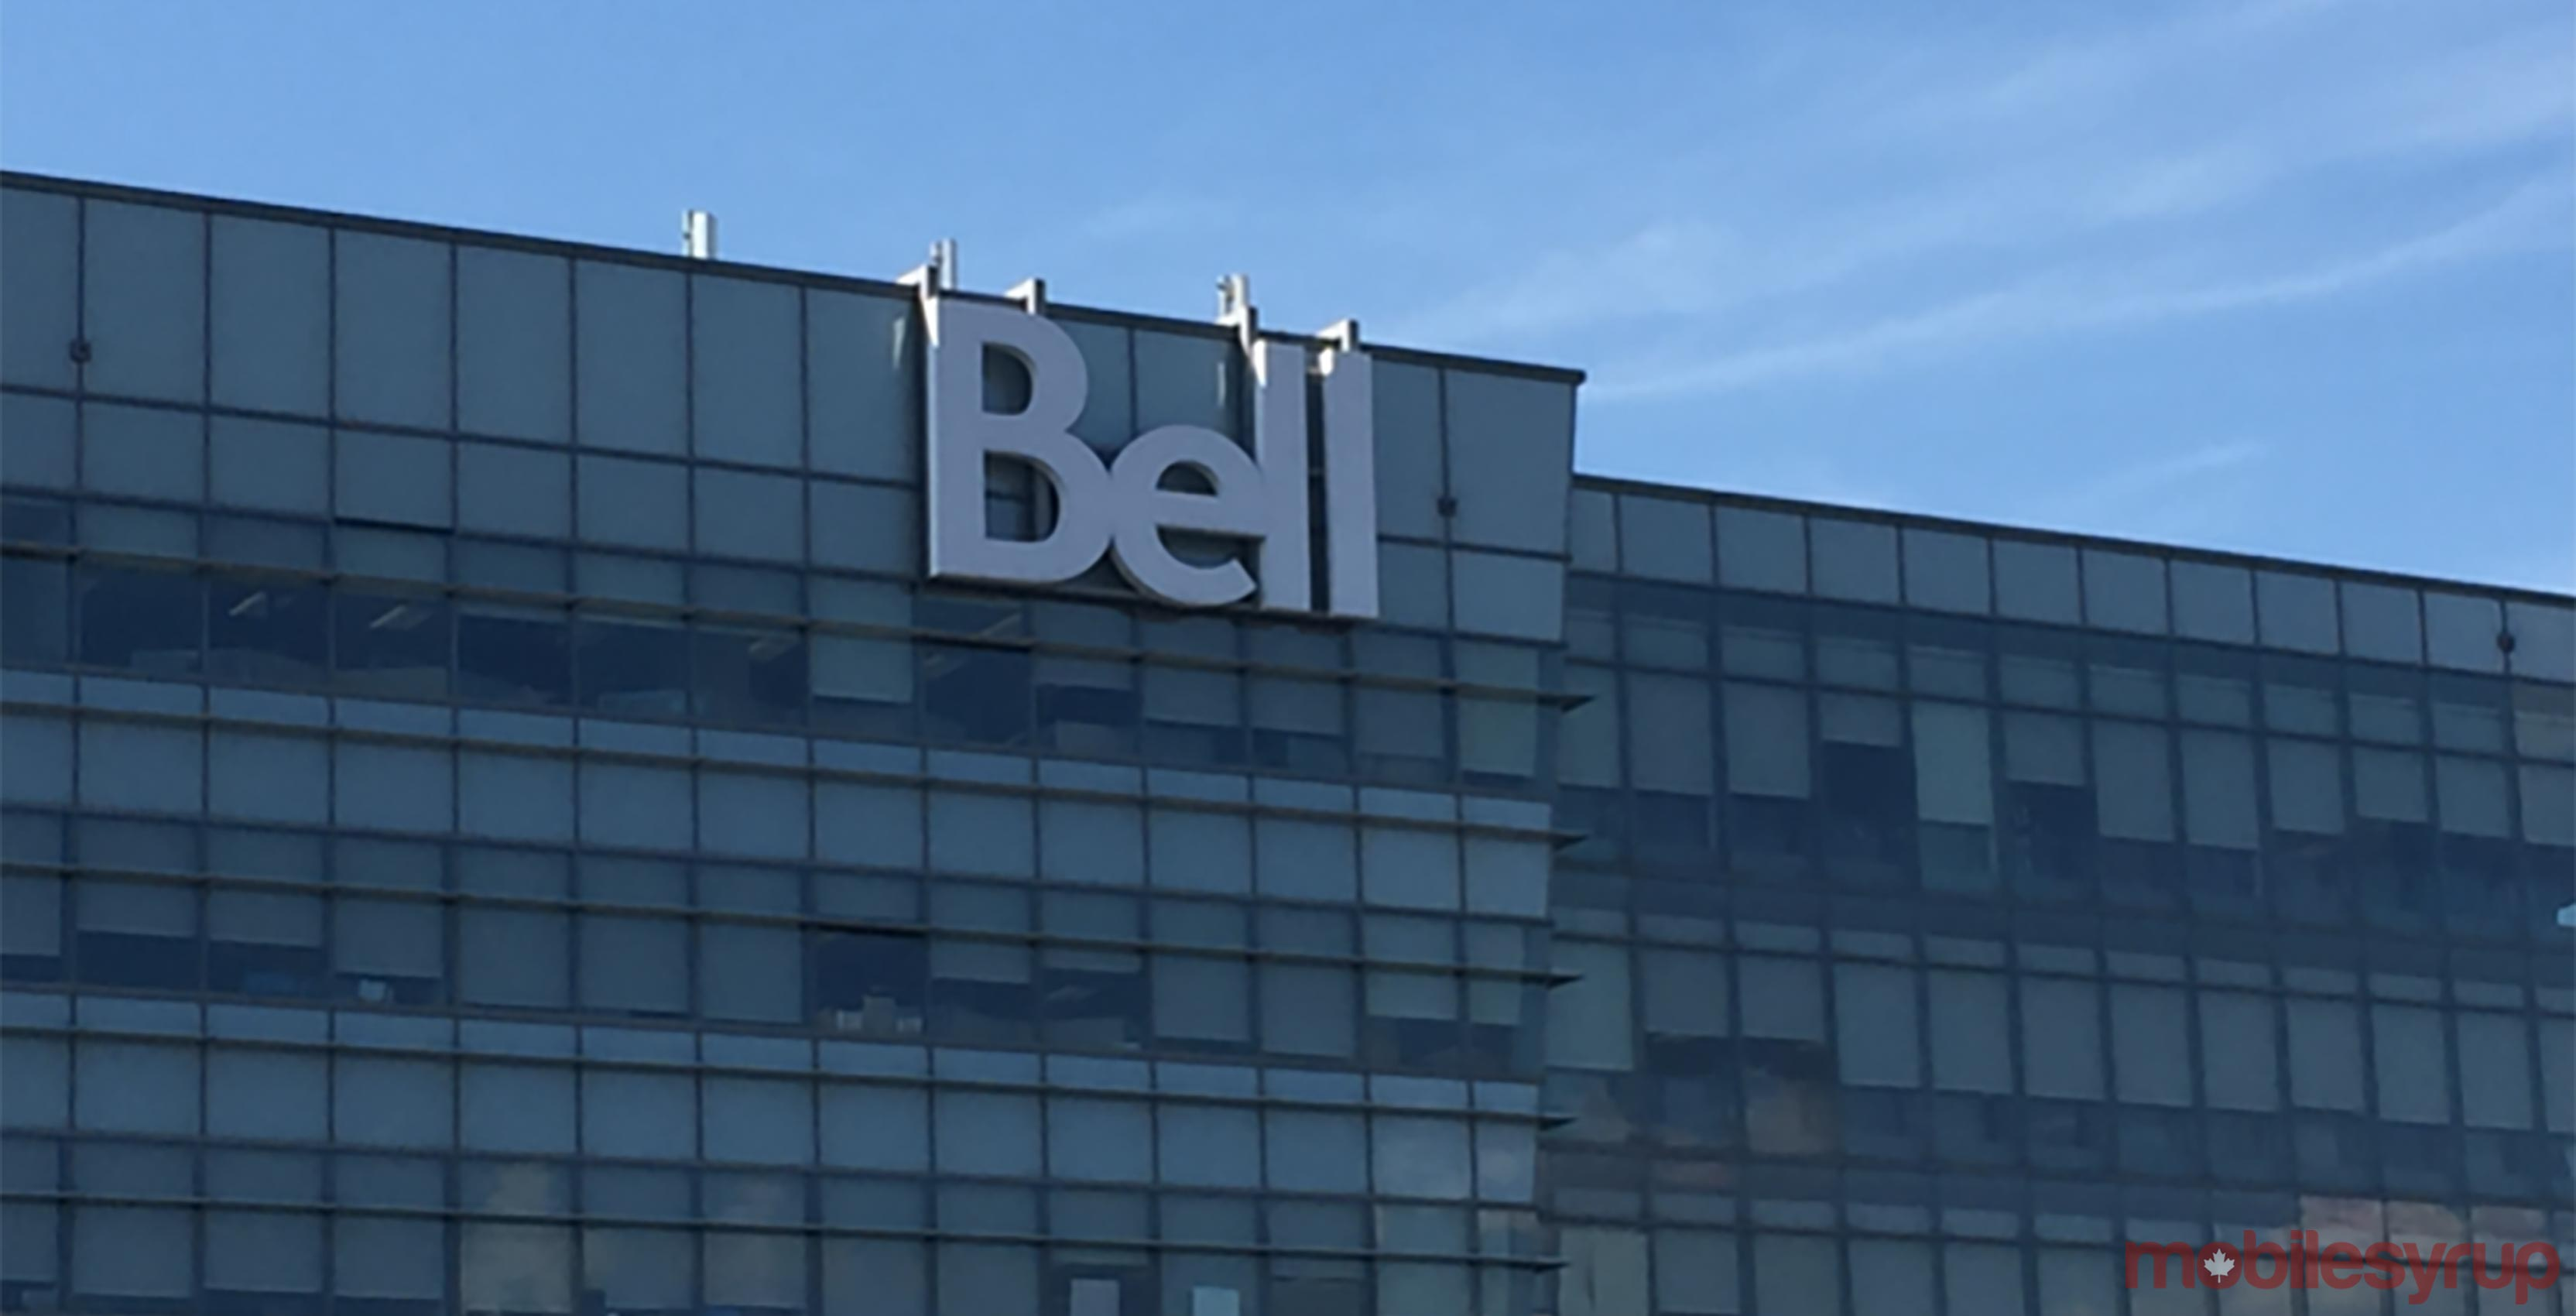 An image showing the Bell logo atop a corporate office